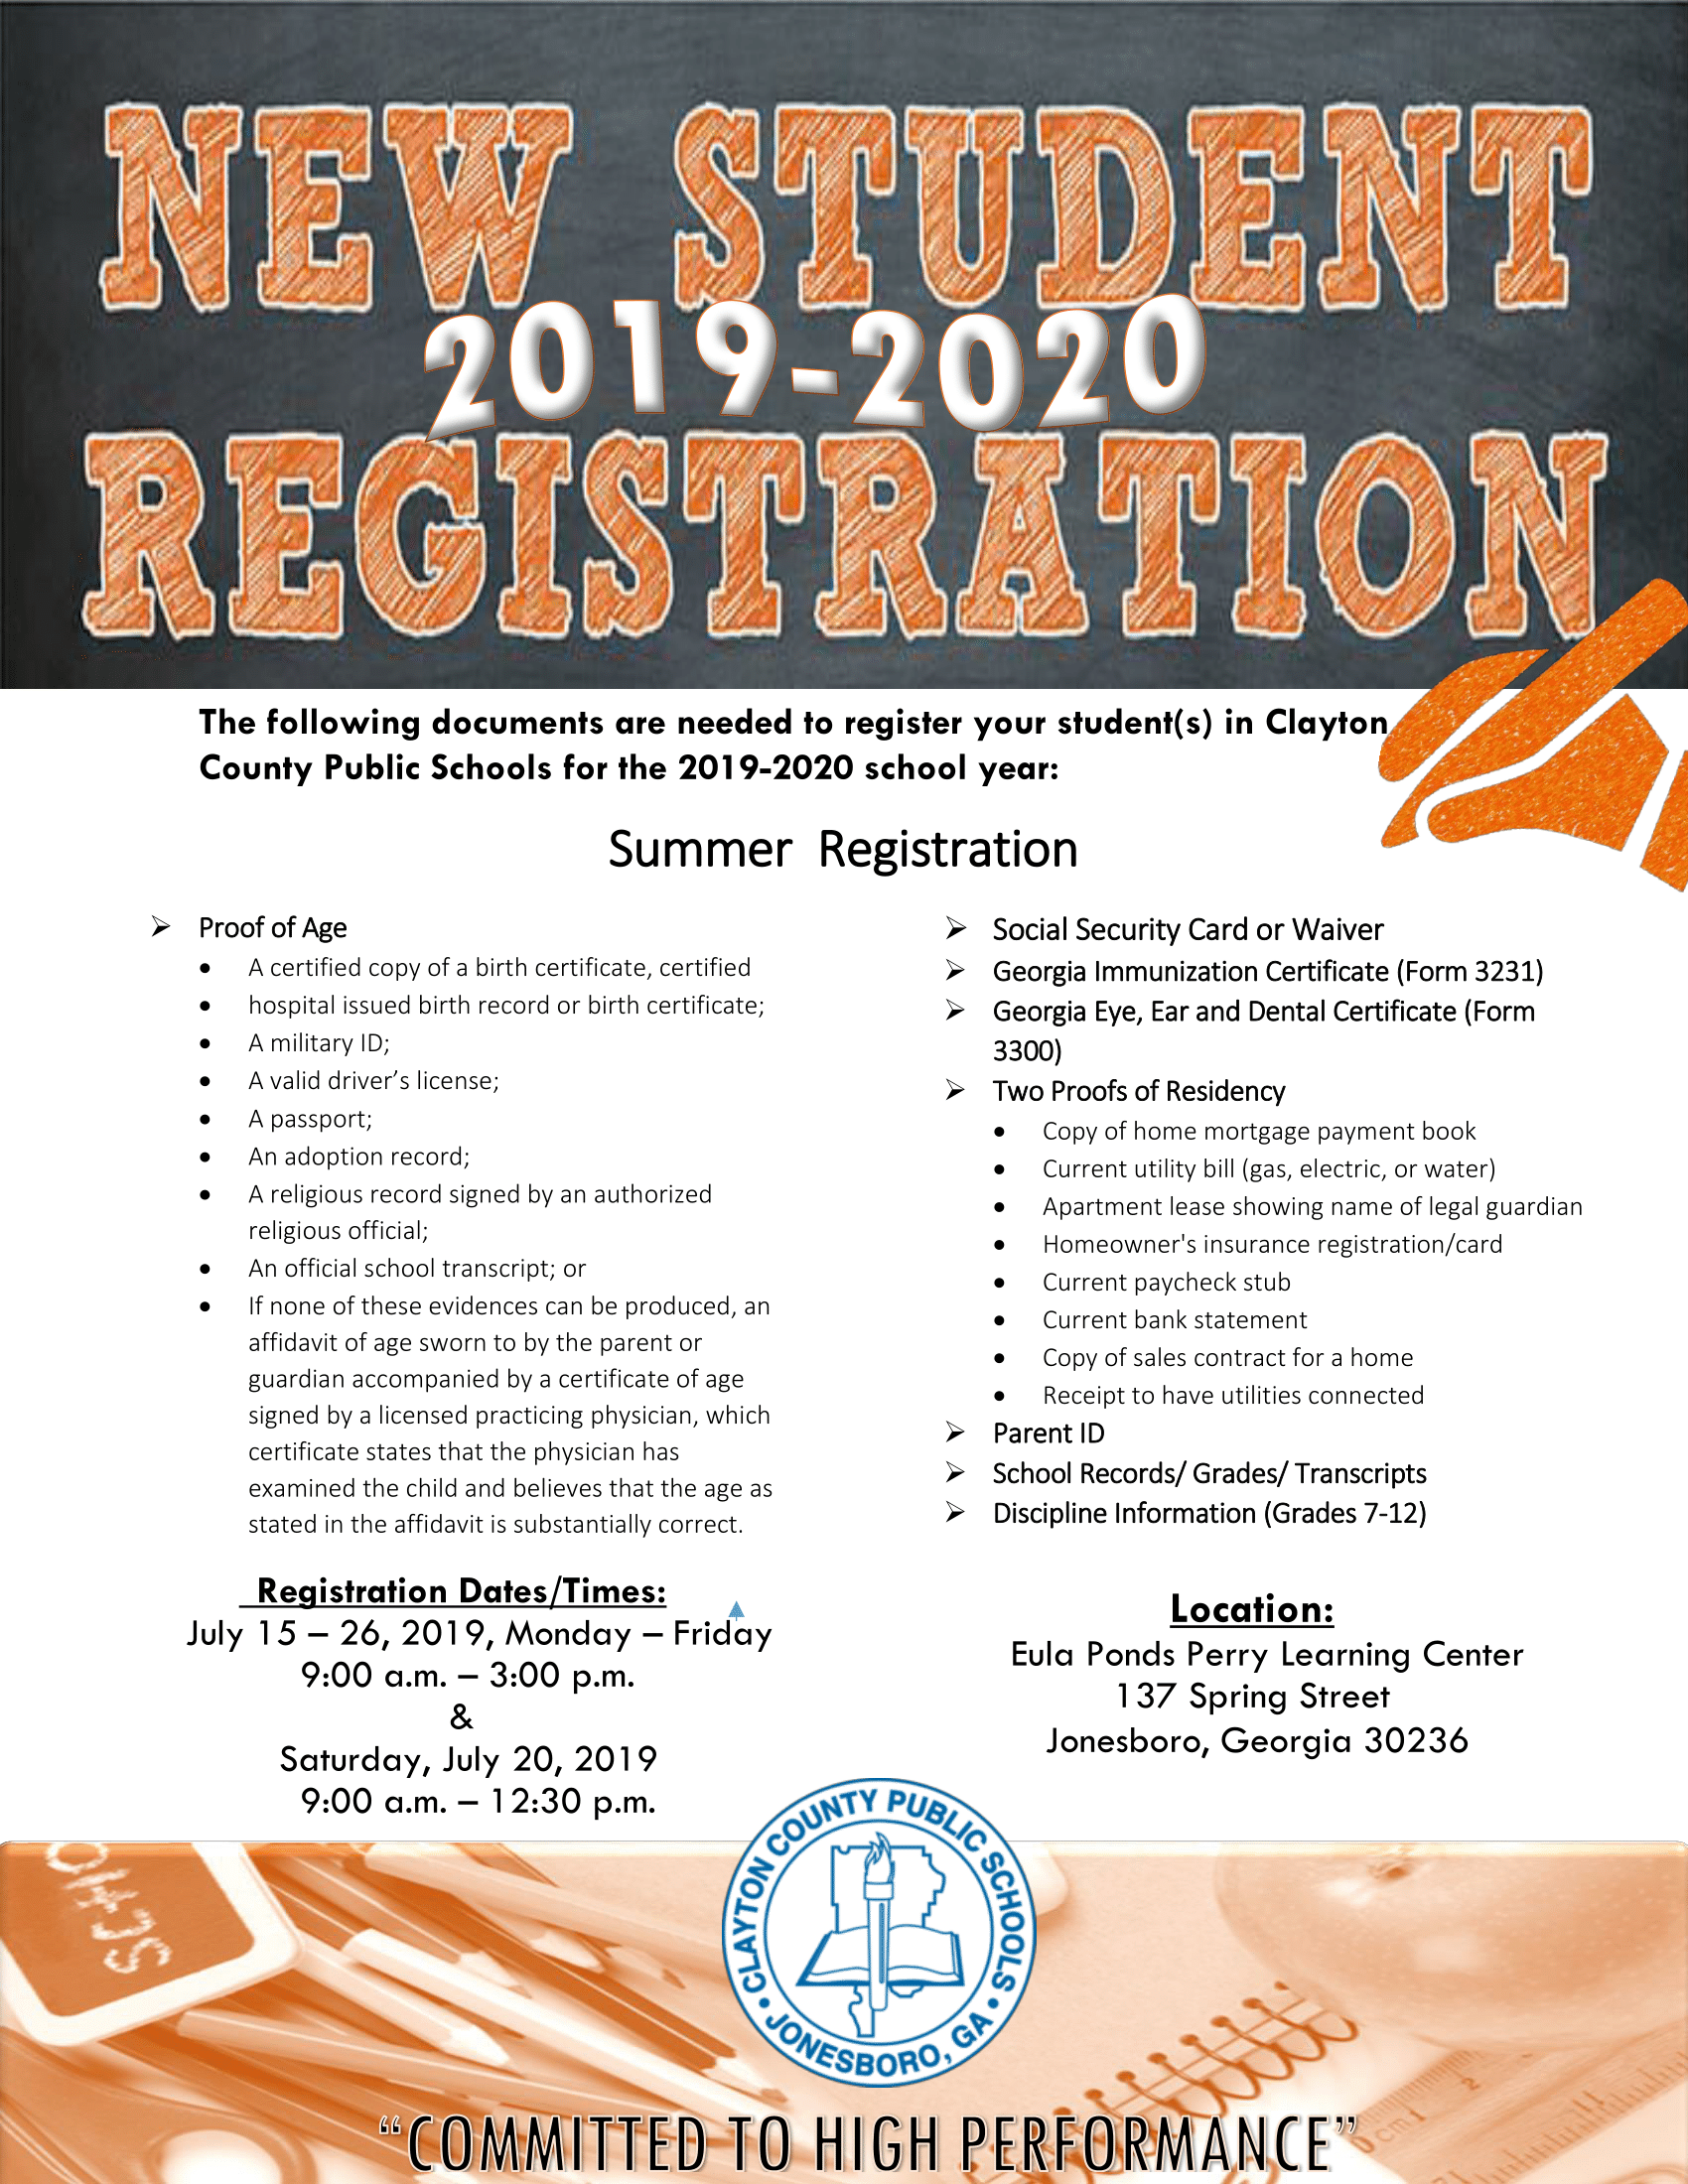 Summer 2019-2020 New Student Registration